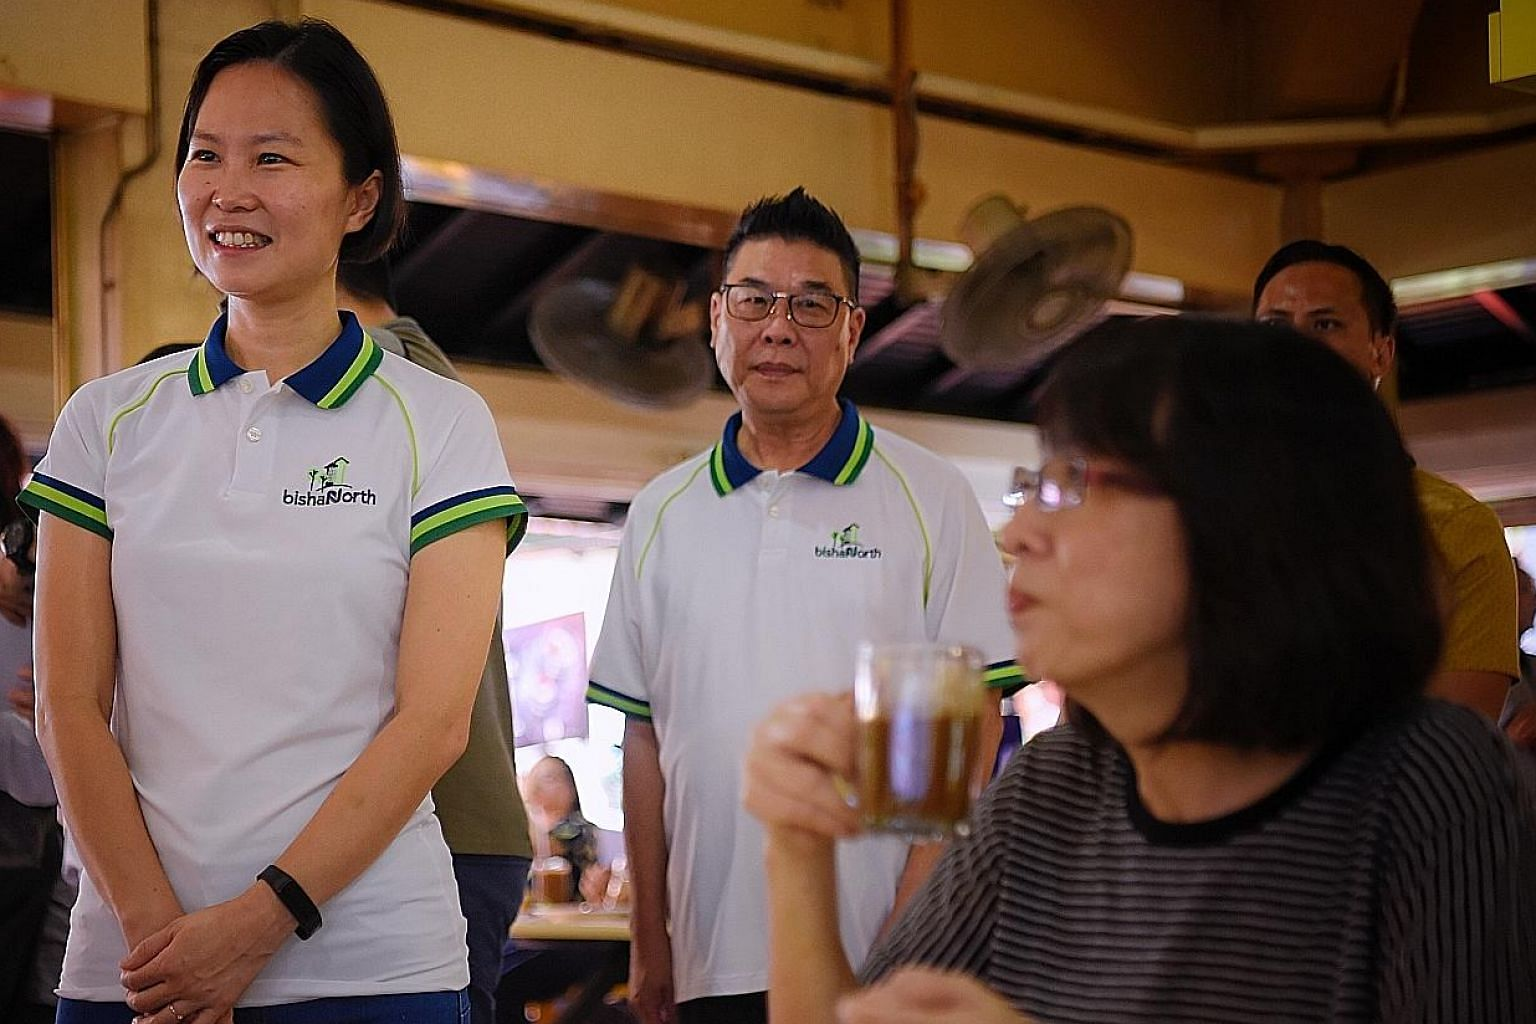 Former RSAF chief of staff - air staff Gan Siow Huang (left) spotted at a walkabout at a coffee shop in Bishan Street 24 yesterday. ST PHOTO: MARK CHEONG